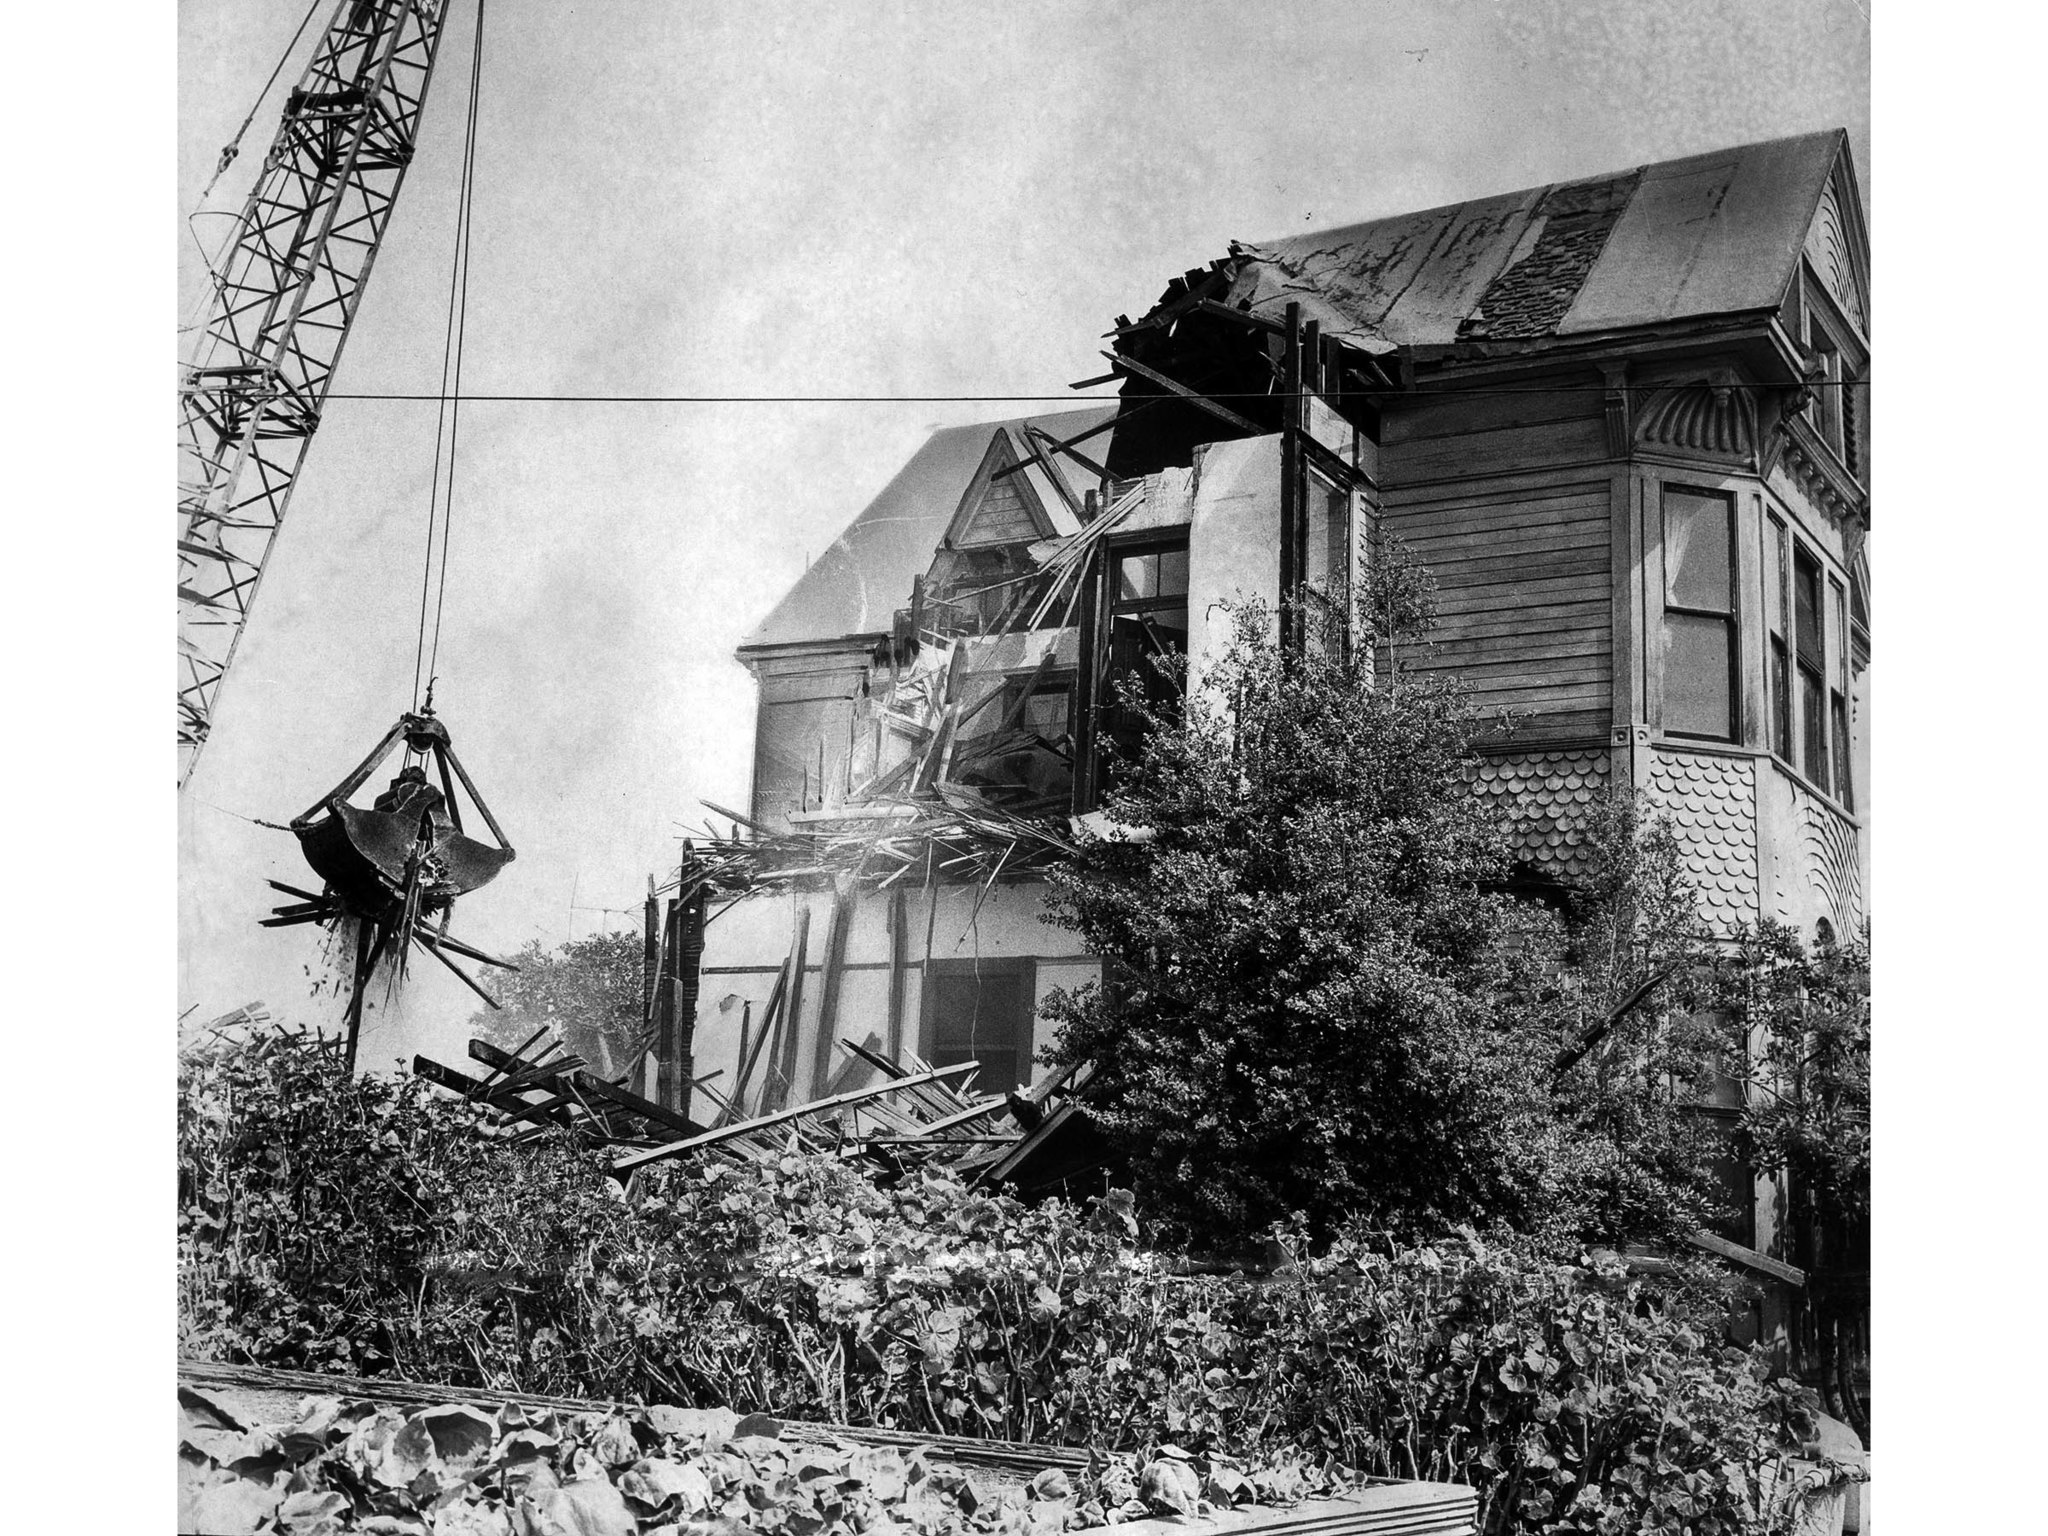 Sep. 10, 1966: A demolition crane takes a bite out of one of the last Victorian structures on Bunker